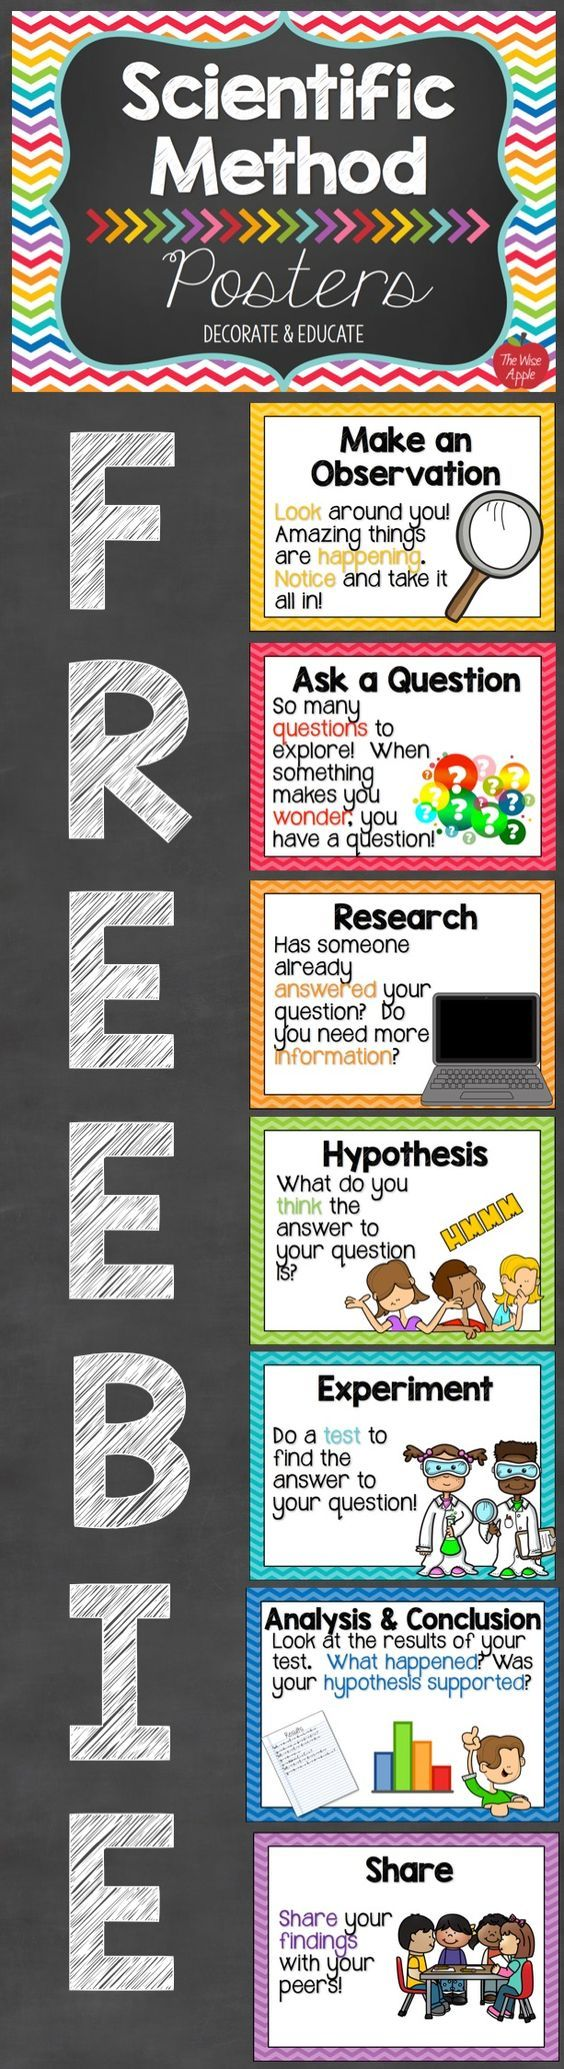 7 FREE & Fabulous Scientific Method Posters for your classroom.